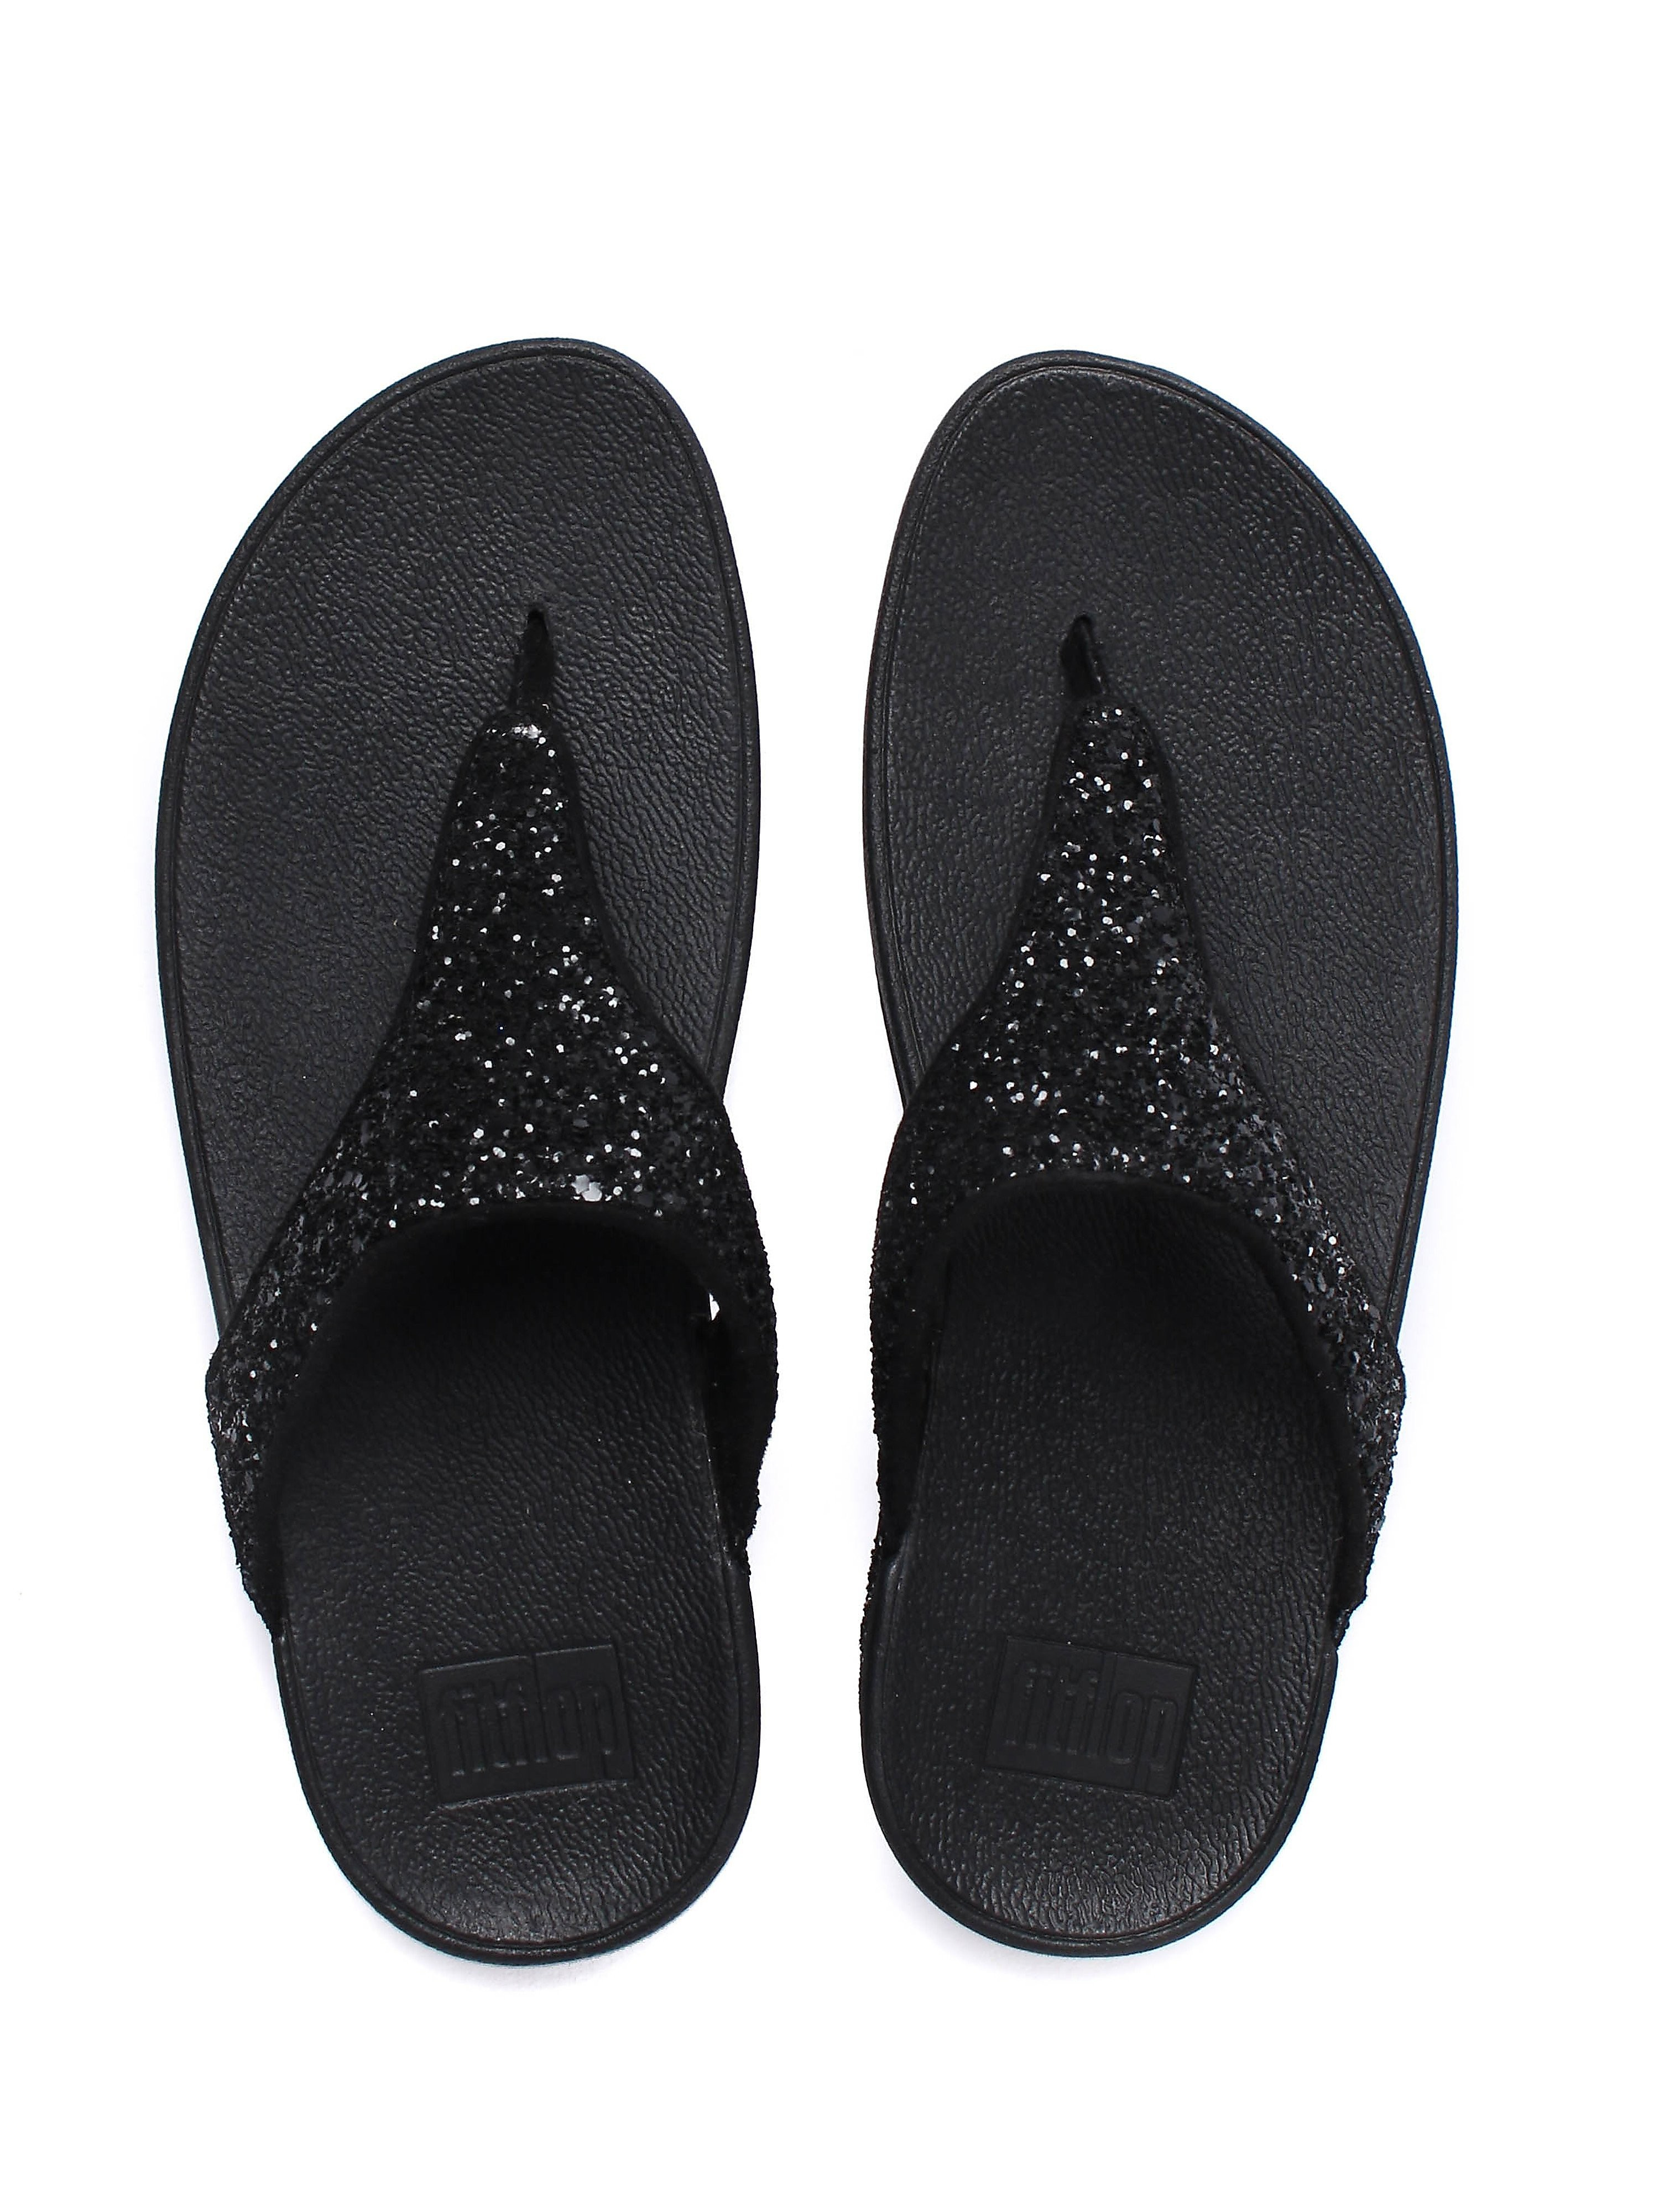 FitFlop Women's Glitterball Toe-Post Sandals - Black